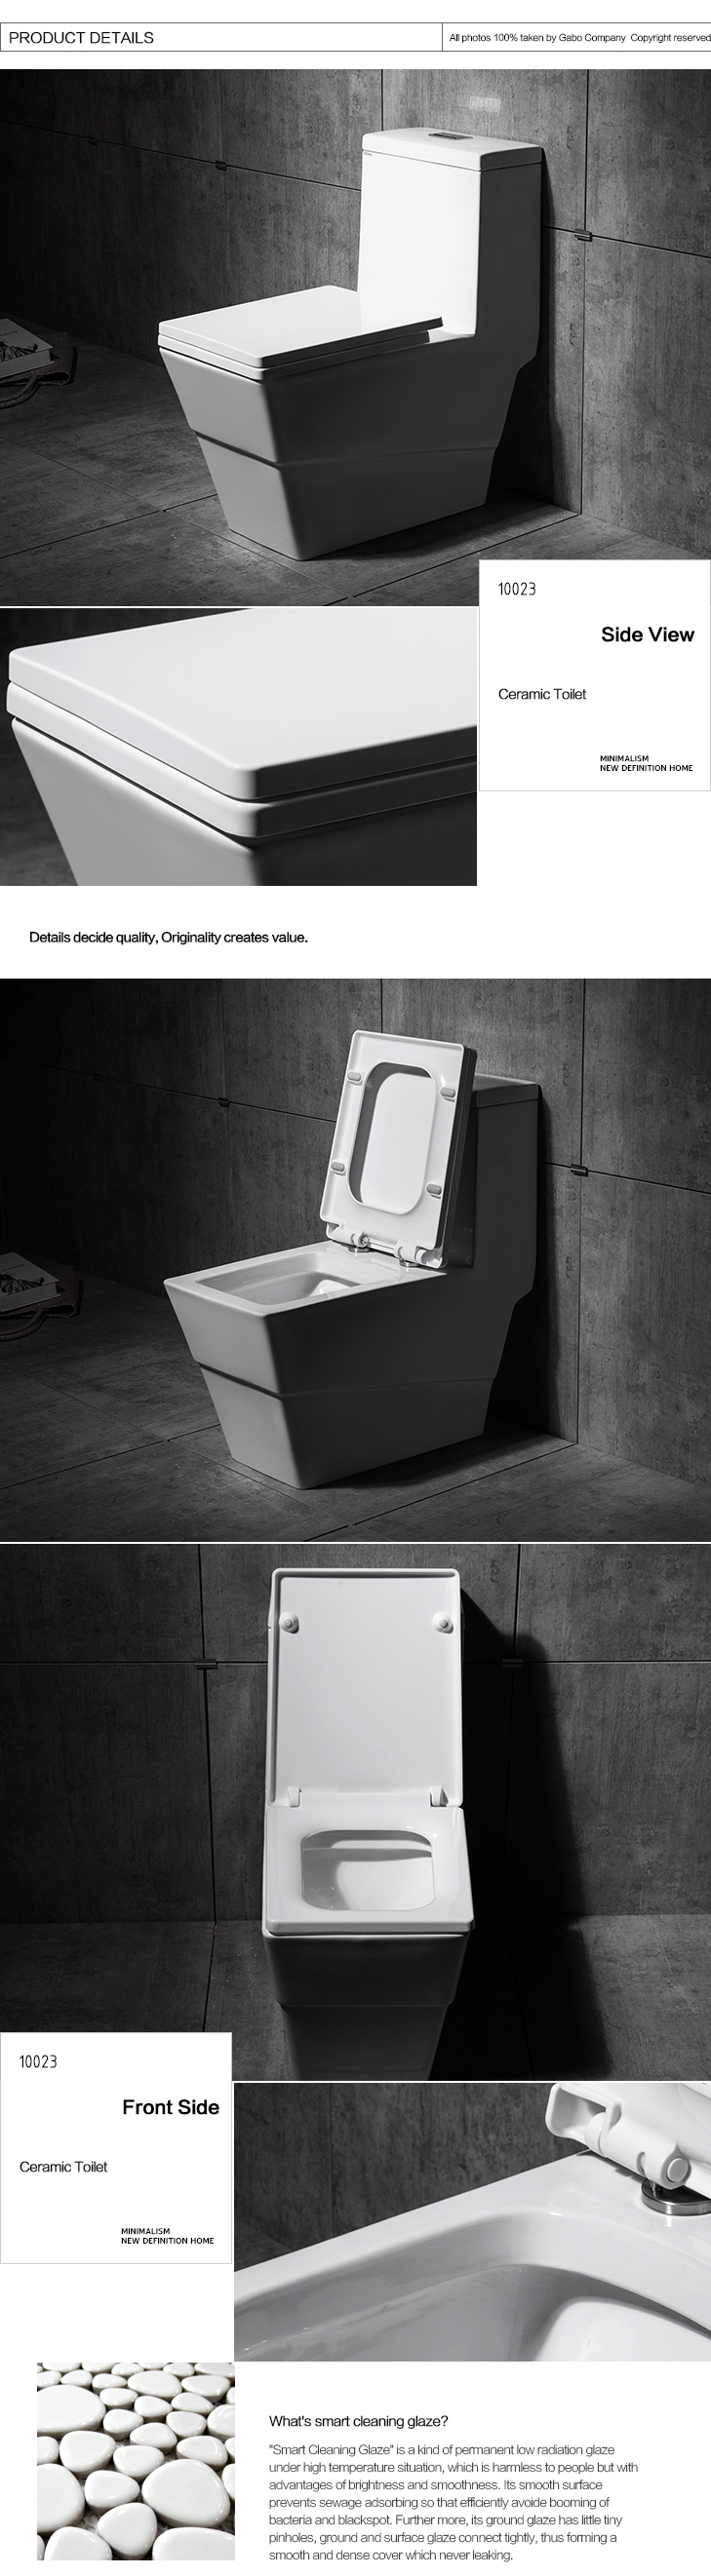 Japan Sanitary Ware One Piece Portable Toilet